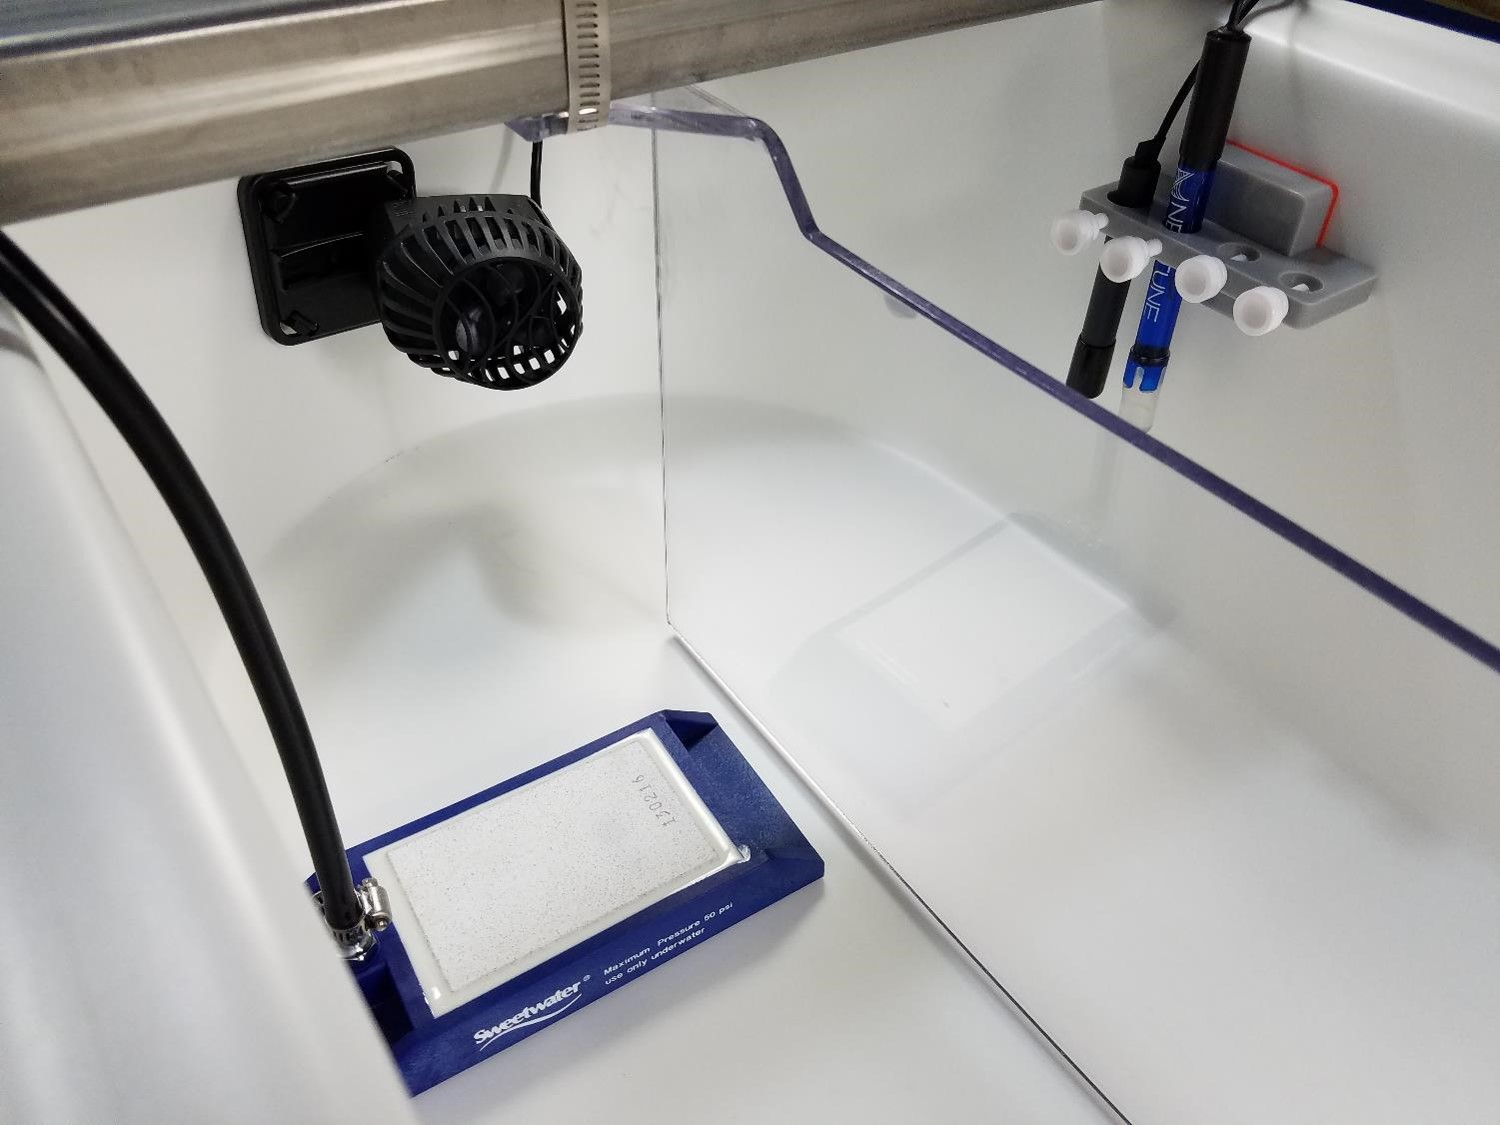 The blue and white block is a ceramic gas diffuser used to sparge a fine mist of CO2 into pond water. The blue sensor probe is a Neptune pH probe (but any pH probe with a BNC connector works). Also pictured is a temperature sensor (black) and the impeller mixer used in the RW0.5i system.